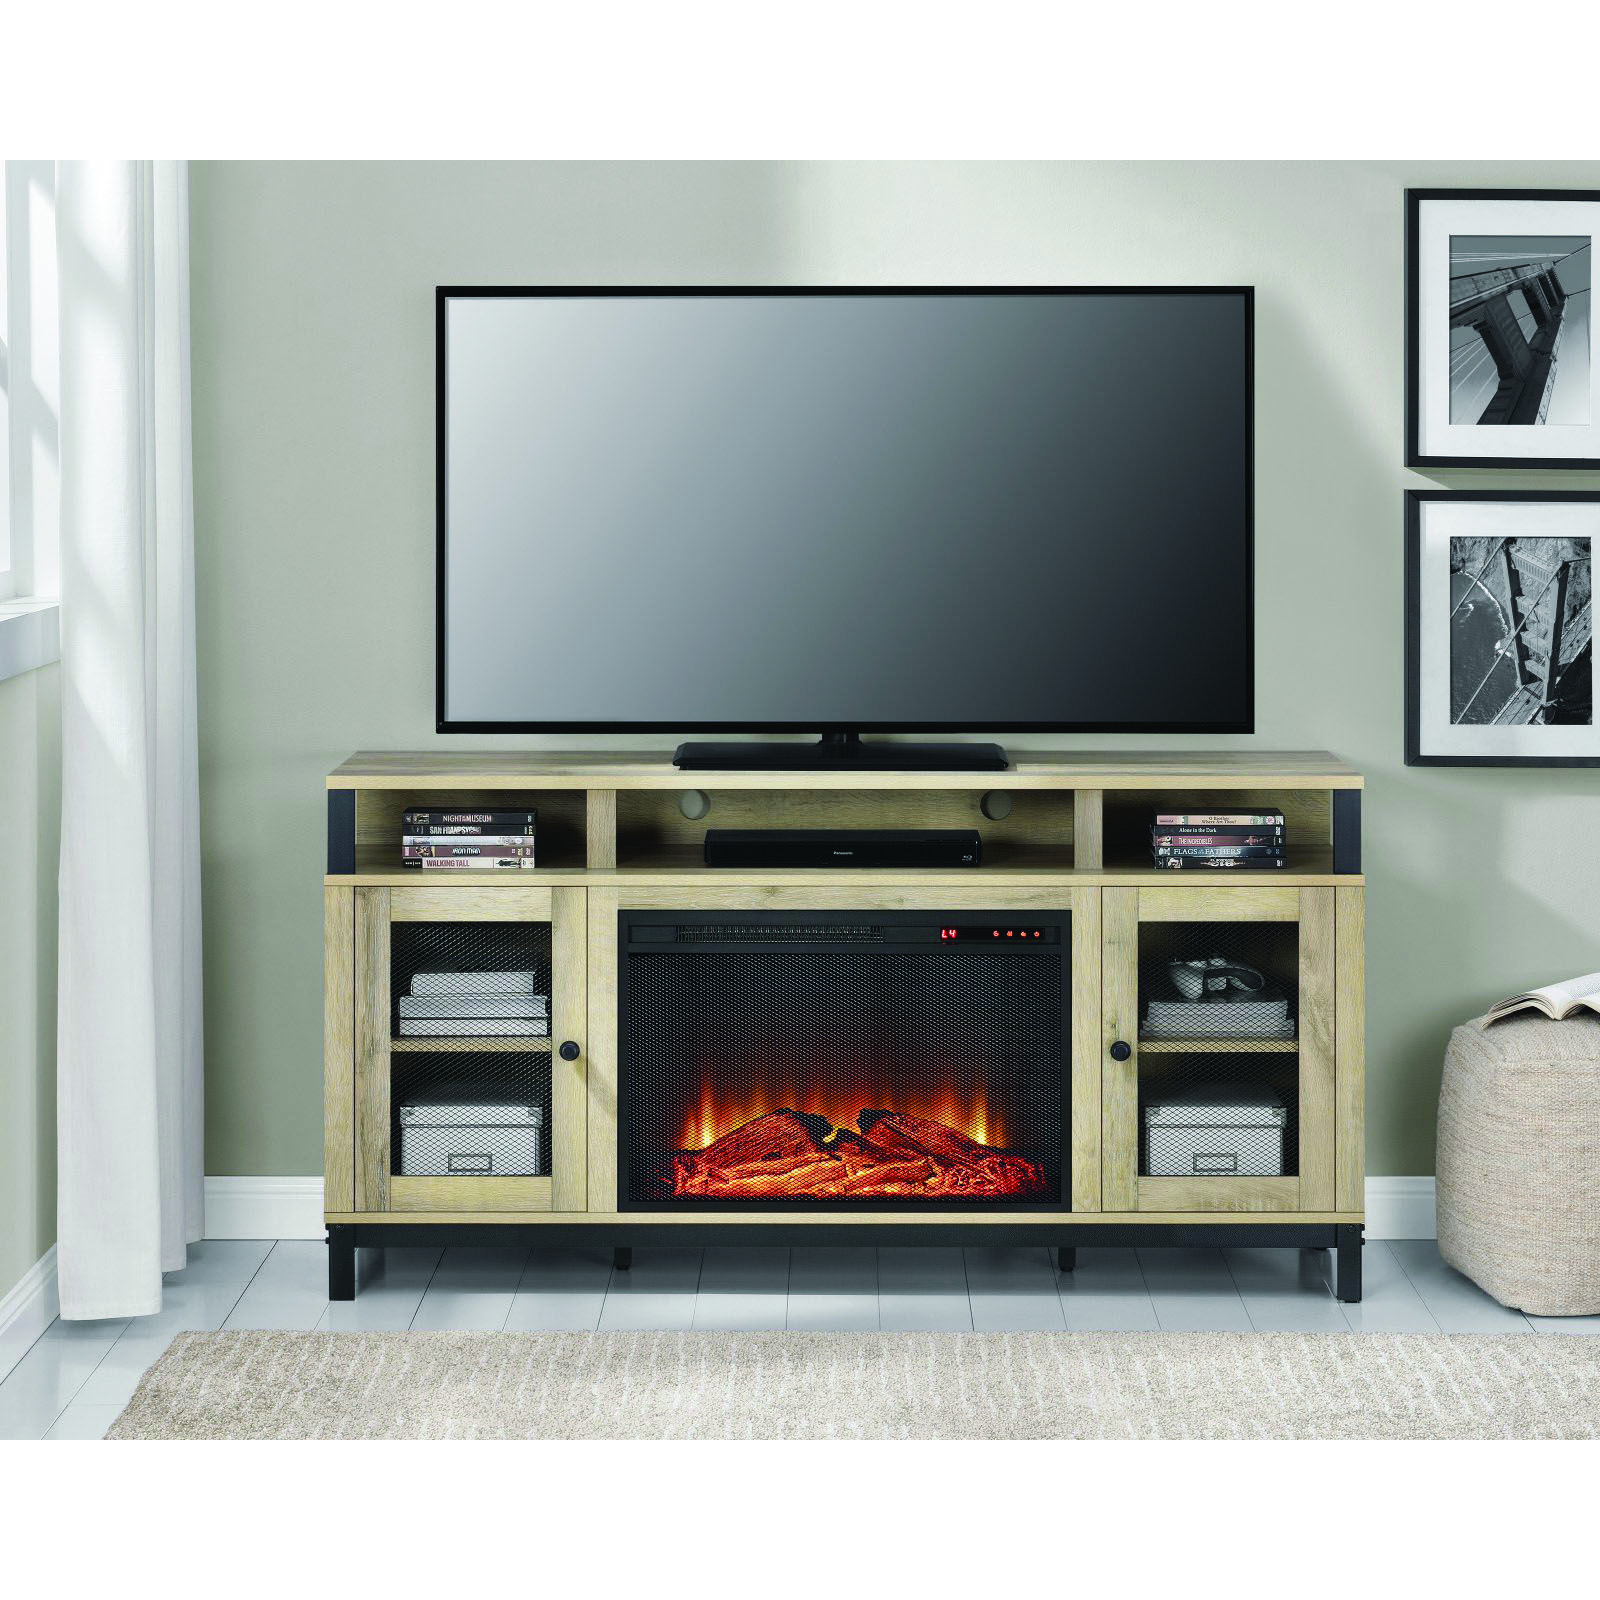 Unique Fireplace Tv Stand Bjs For Your Cozy Home Fireplace Tv